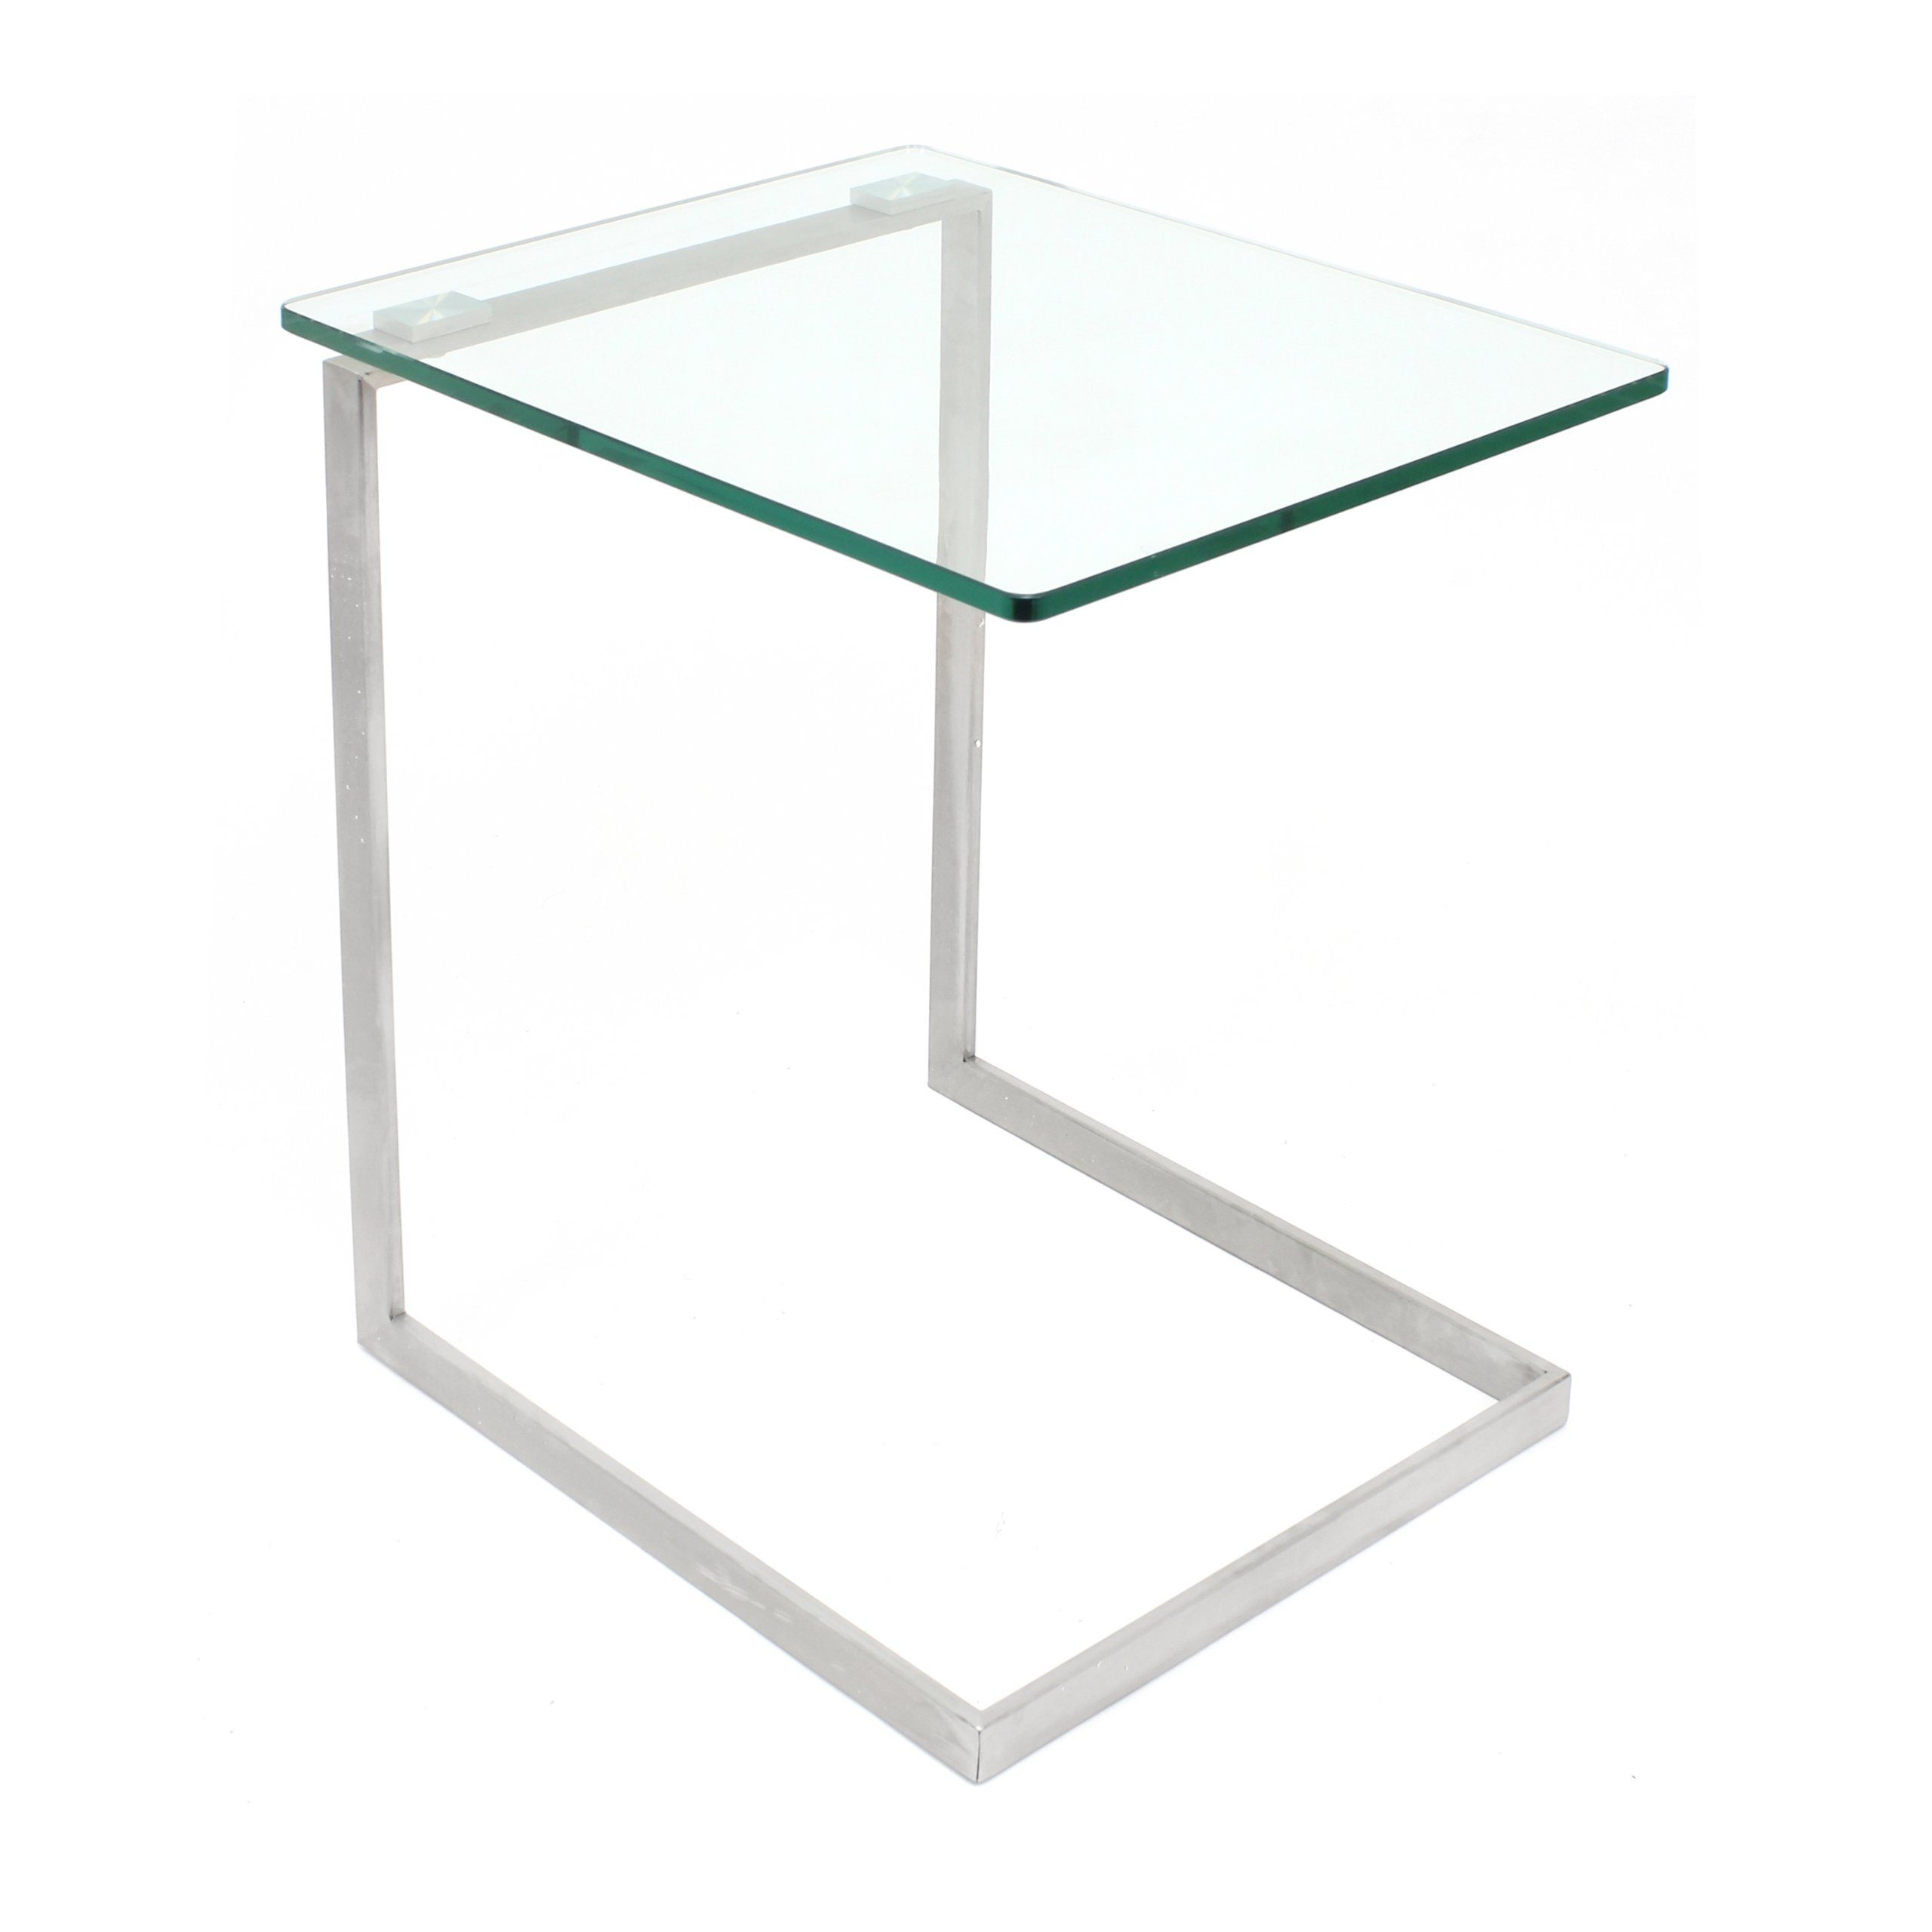 70 At Amazon Product Dimensions 19 2 Deep X 16 Wide X 22 High Inches Lumisource Zenn Glass End Ta Glass End Tables Contemporary End Tables Modern End Tables